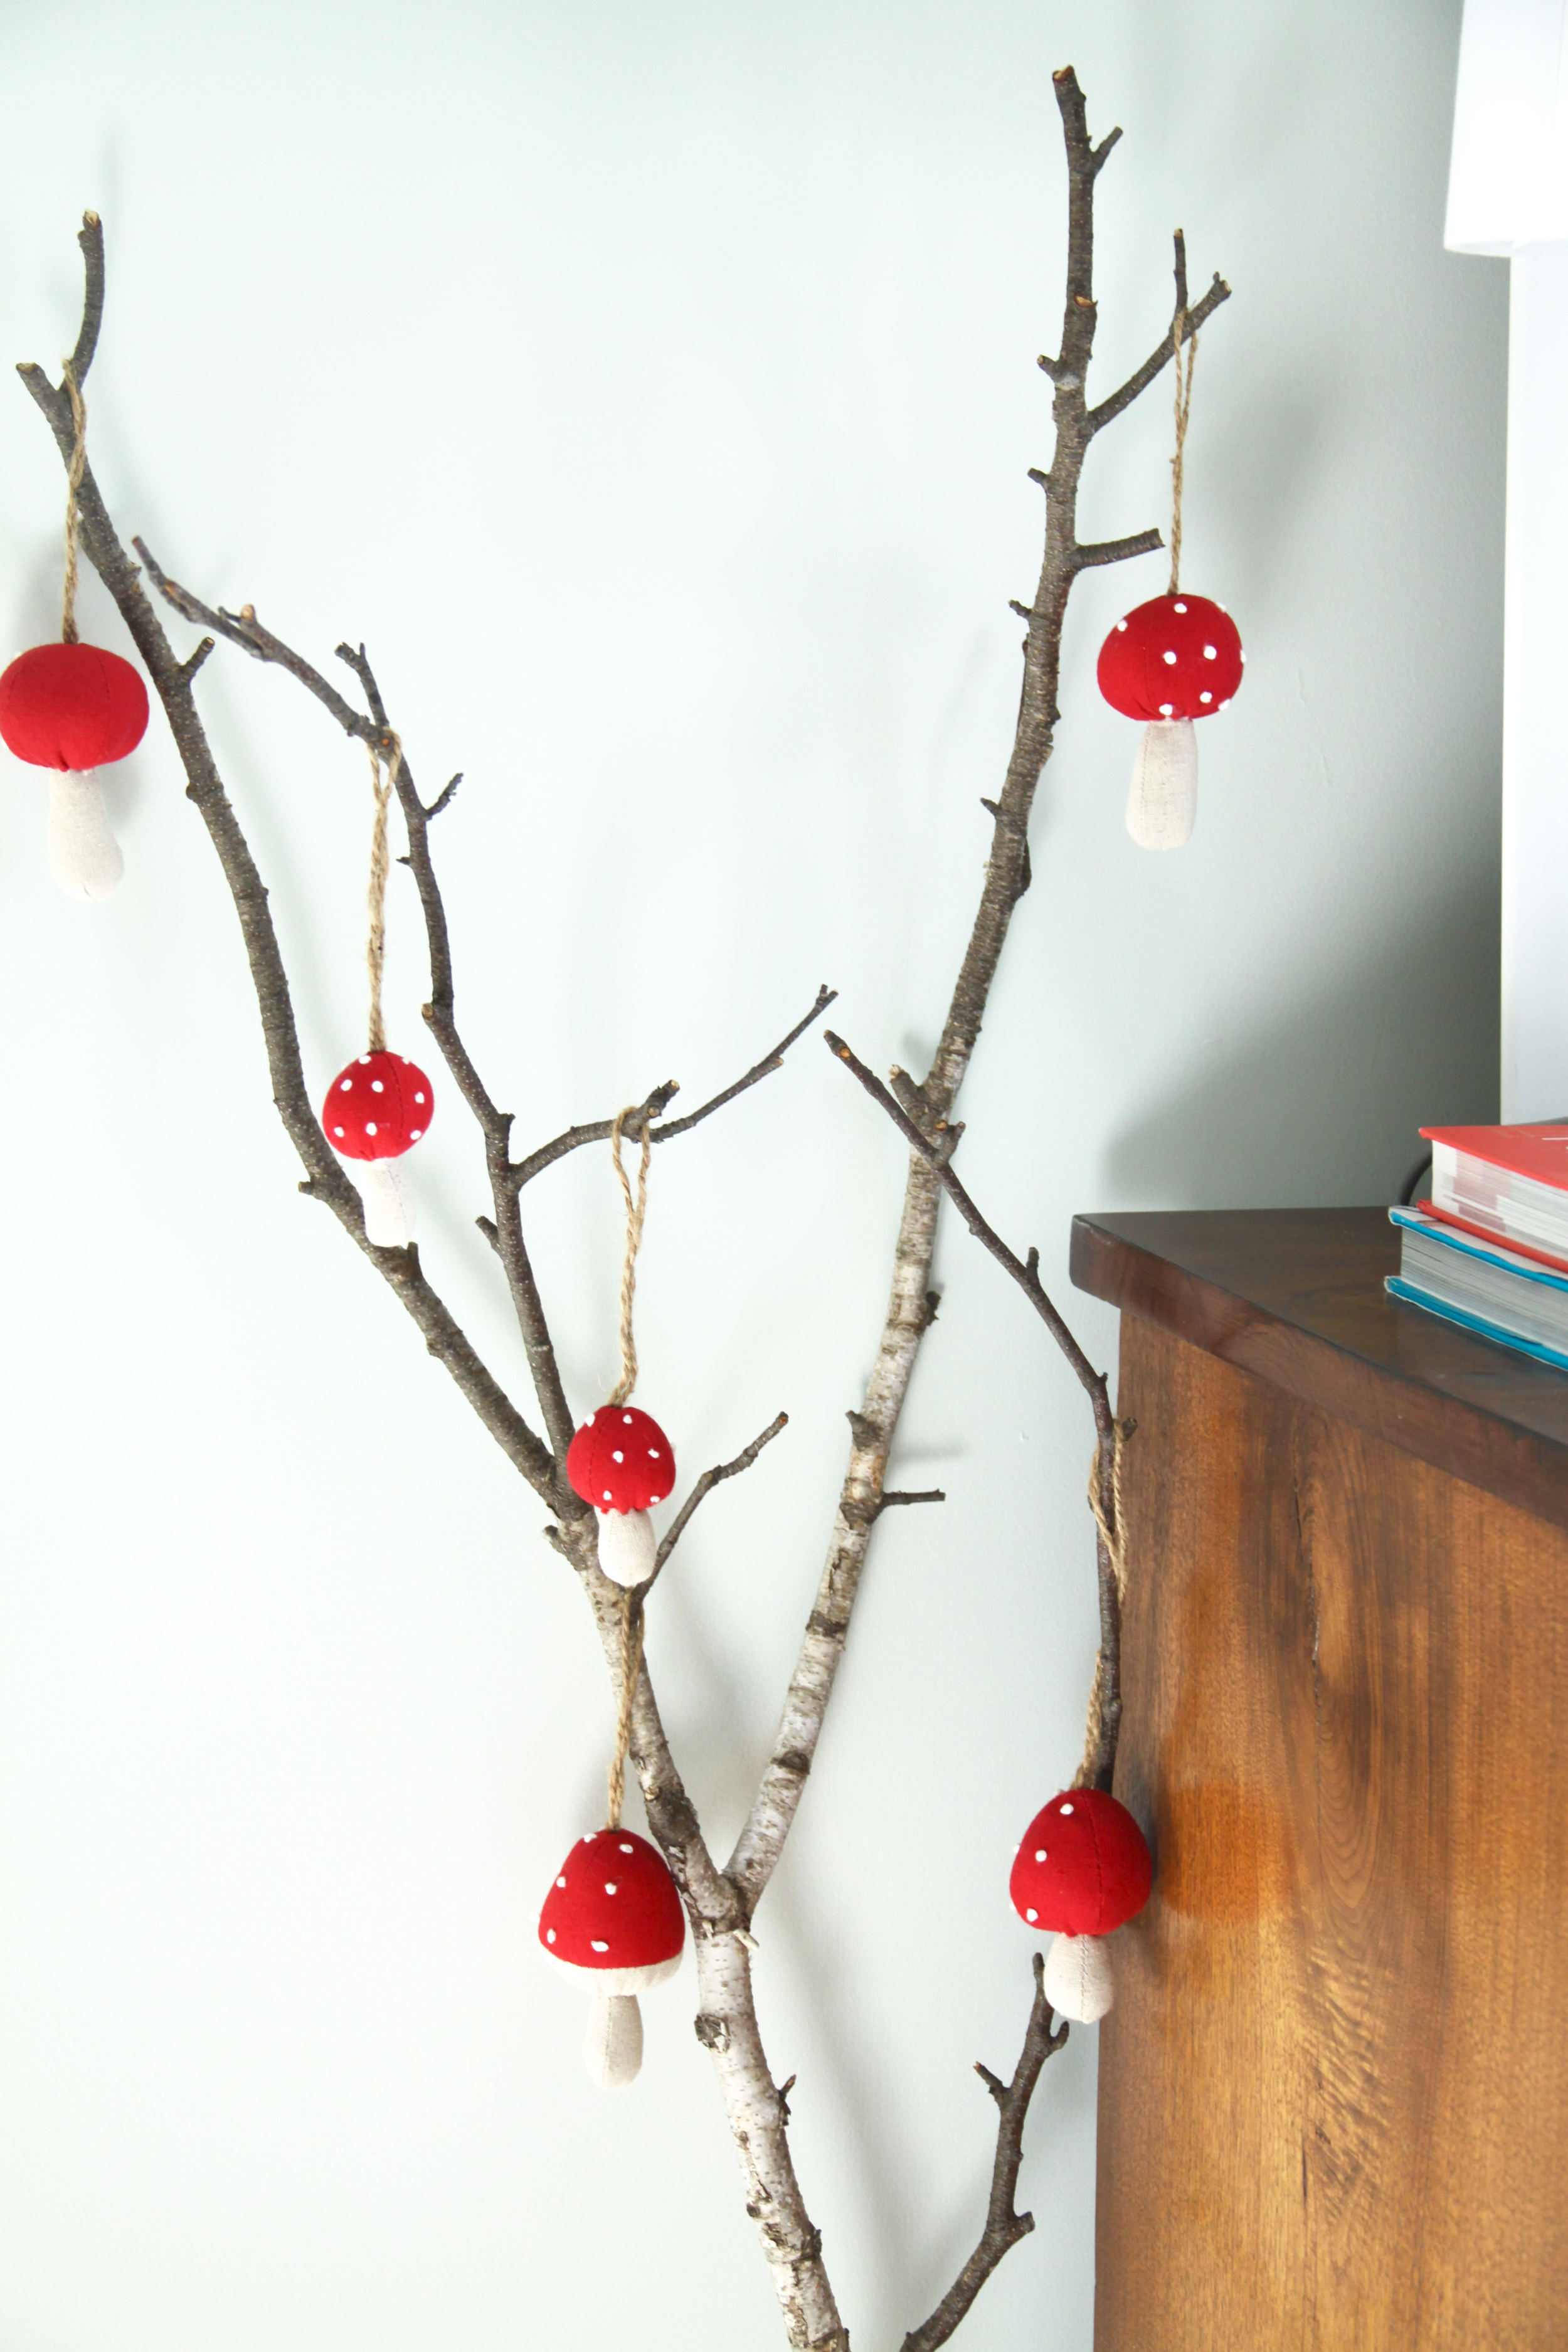 Birch Branch with Christmas Ornaments